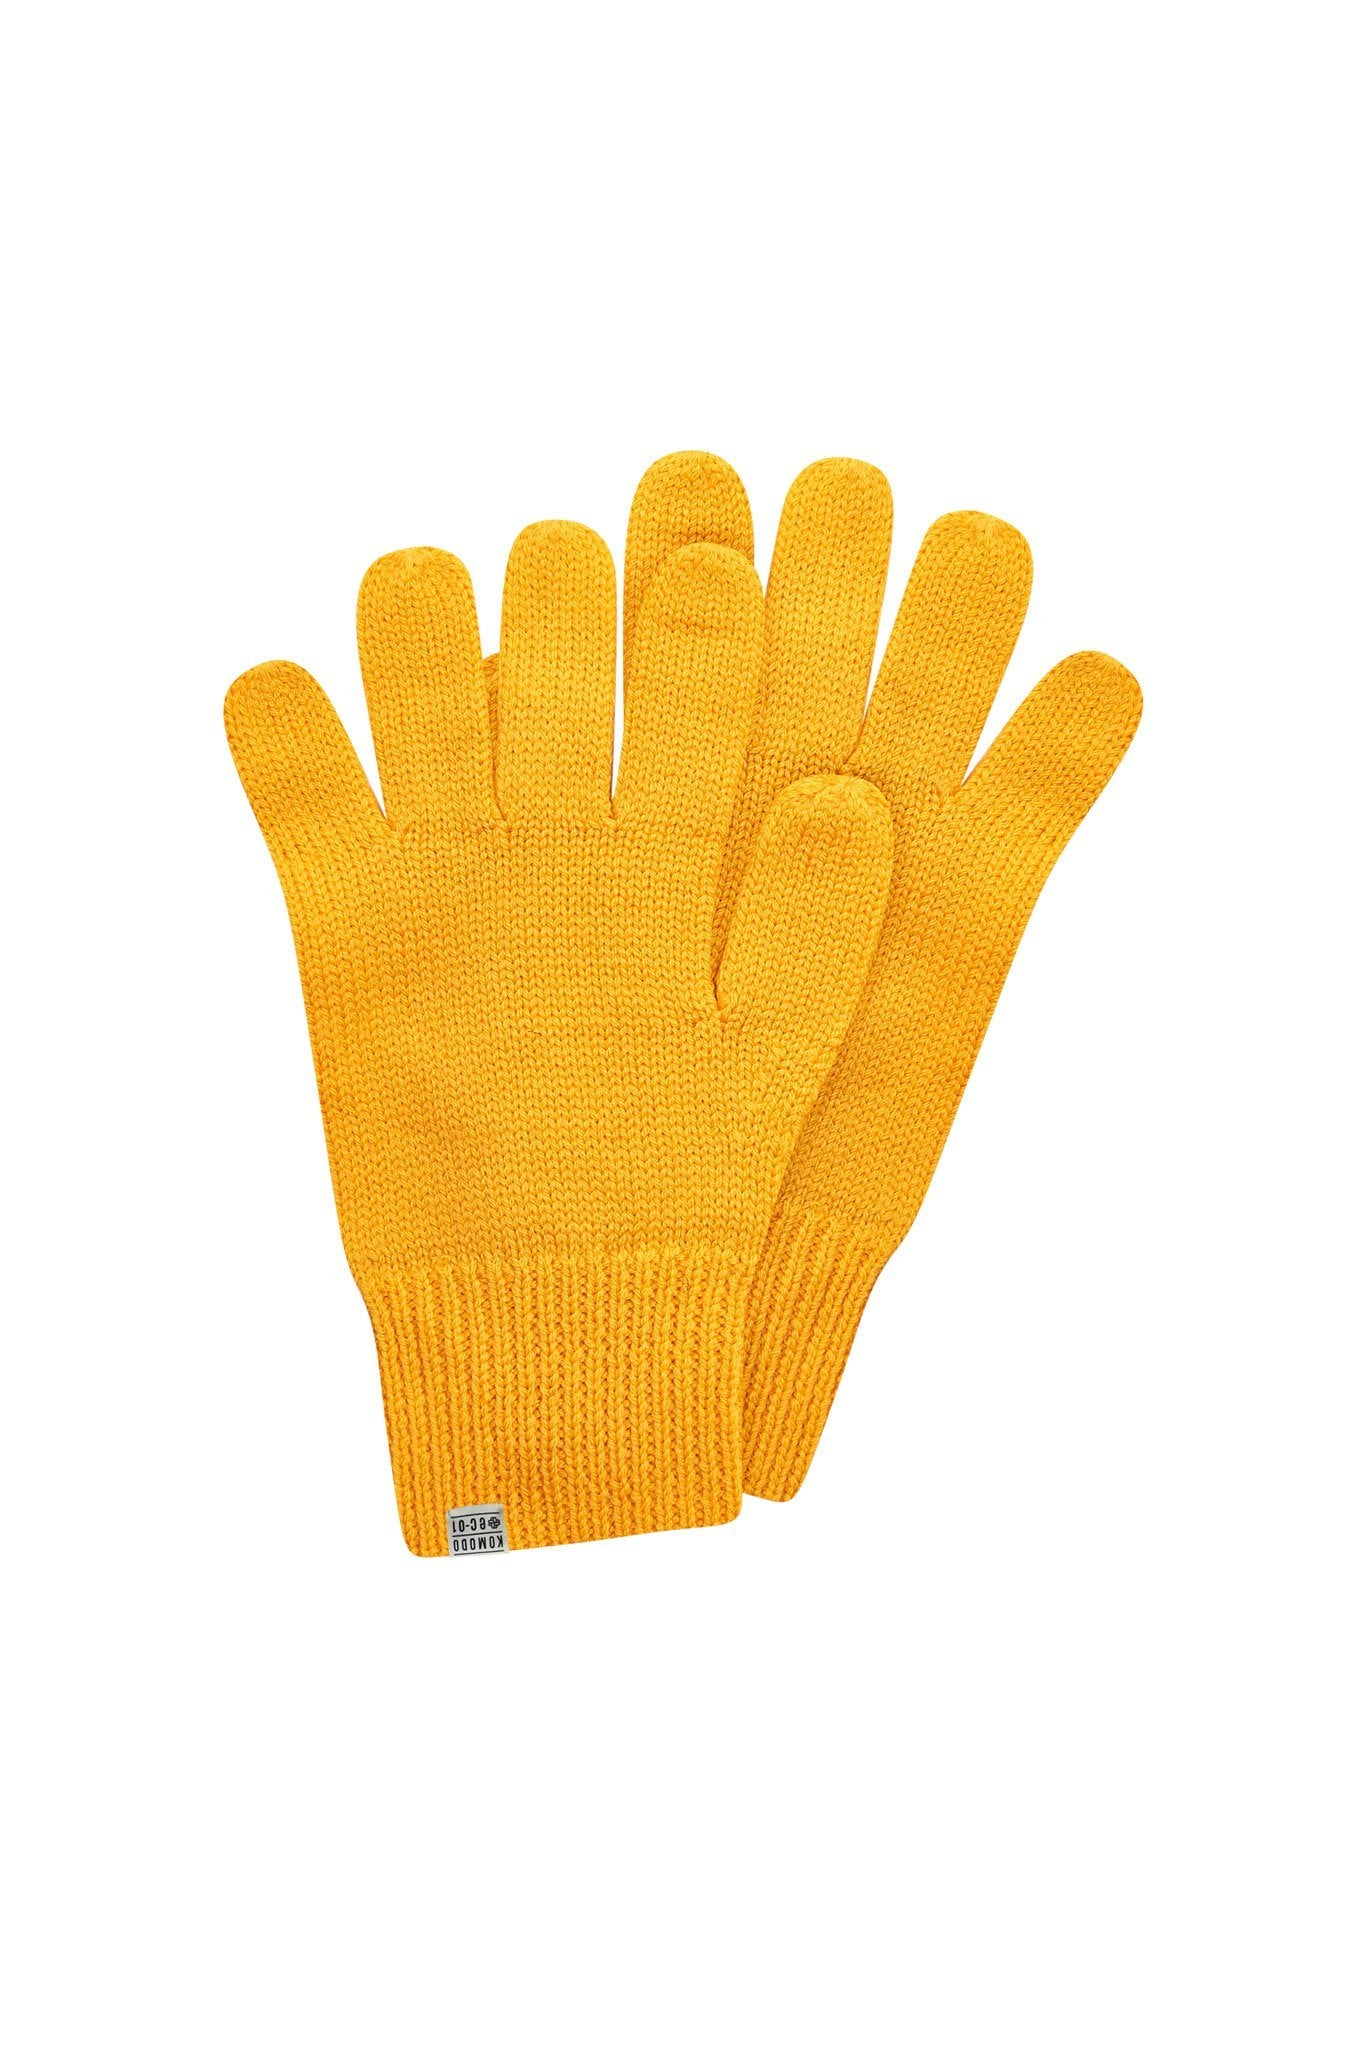 Accessories - TORN Merino Wool Gloves Marigold